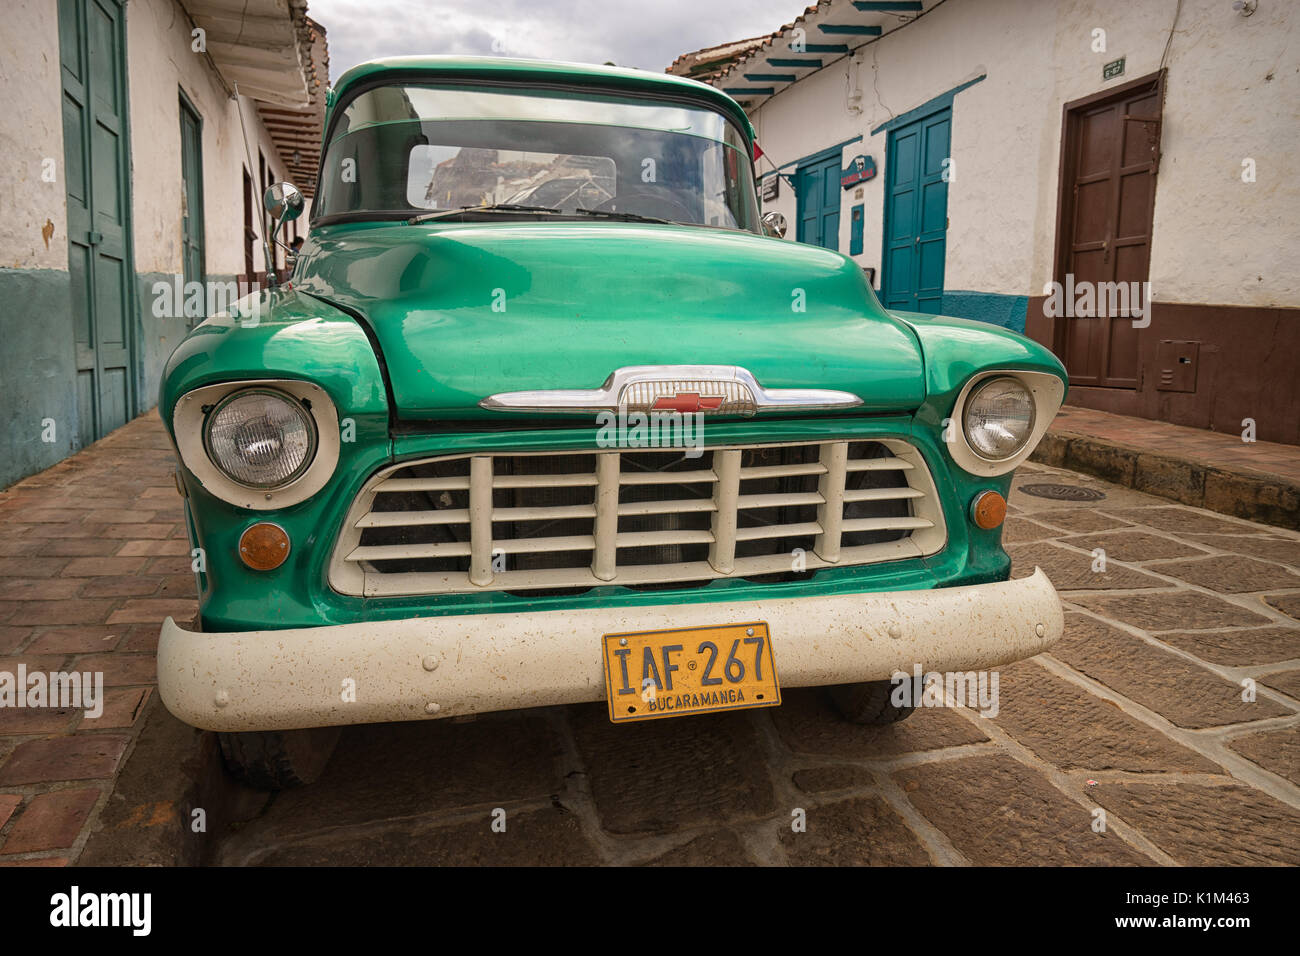 July 22, 2017 Barichara, Colombia: many vintage cars are kept in ...